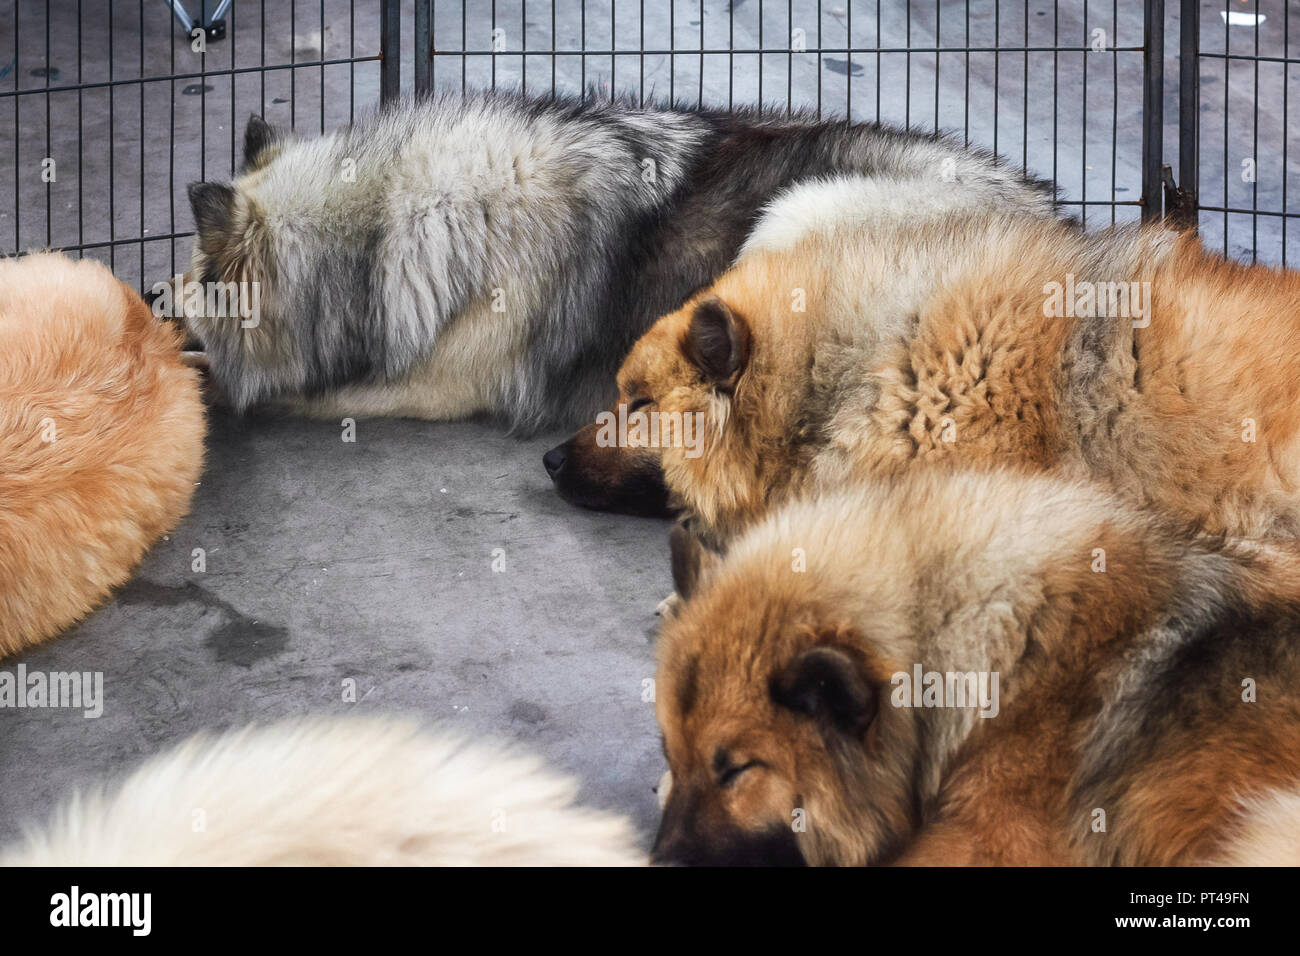 Amsterdam, The Netherlands, August 10, 2018: Big sleeping dogs in their bench during the world dog show in Amsterdam in The Netherlands. Stock Photo